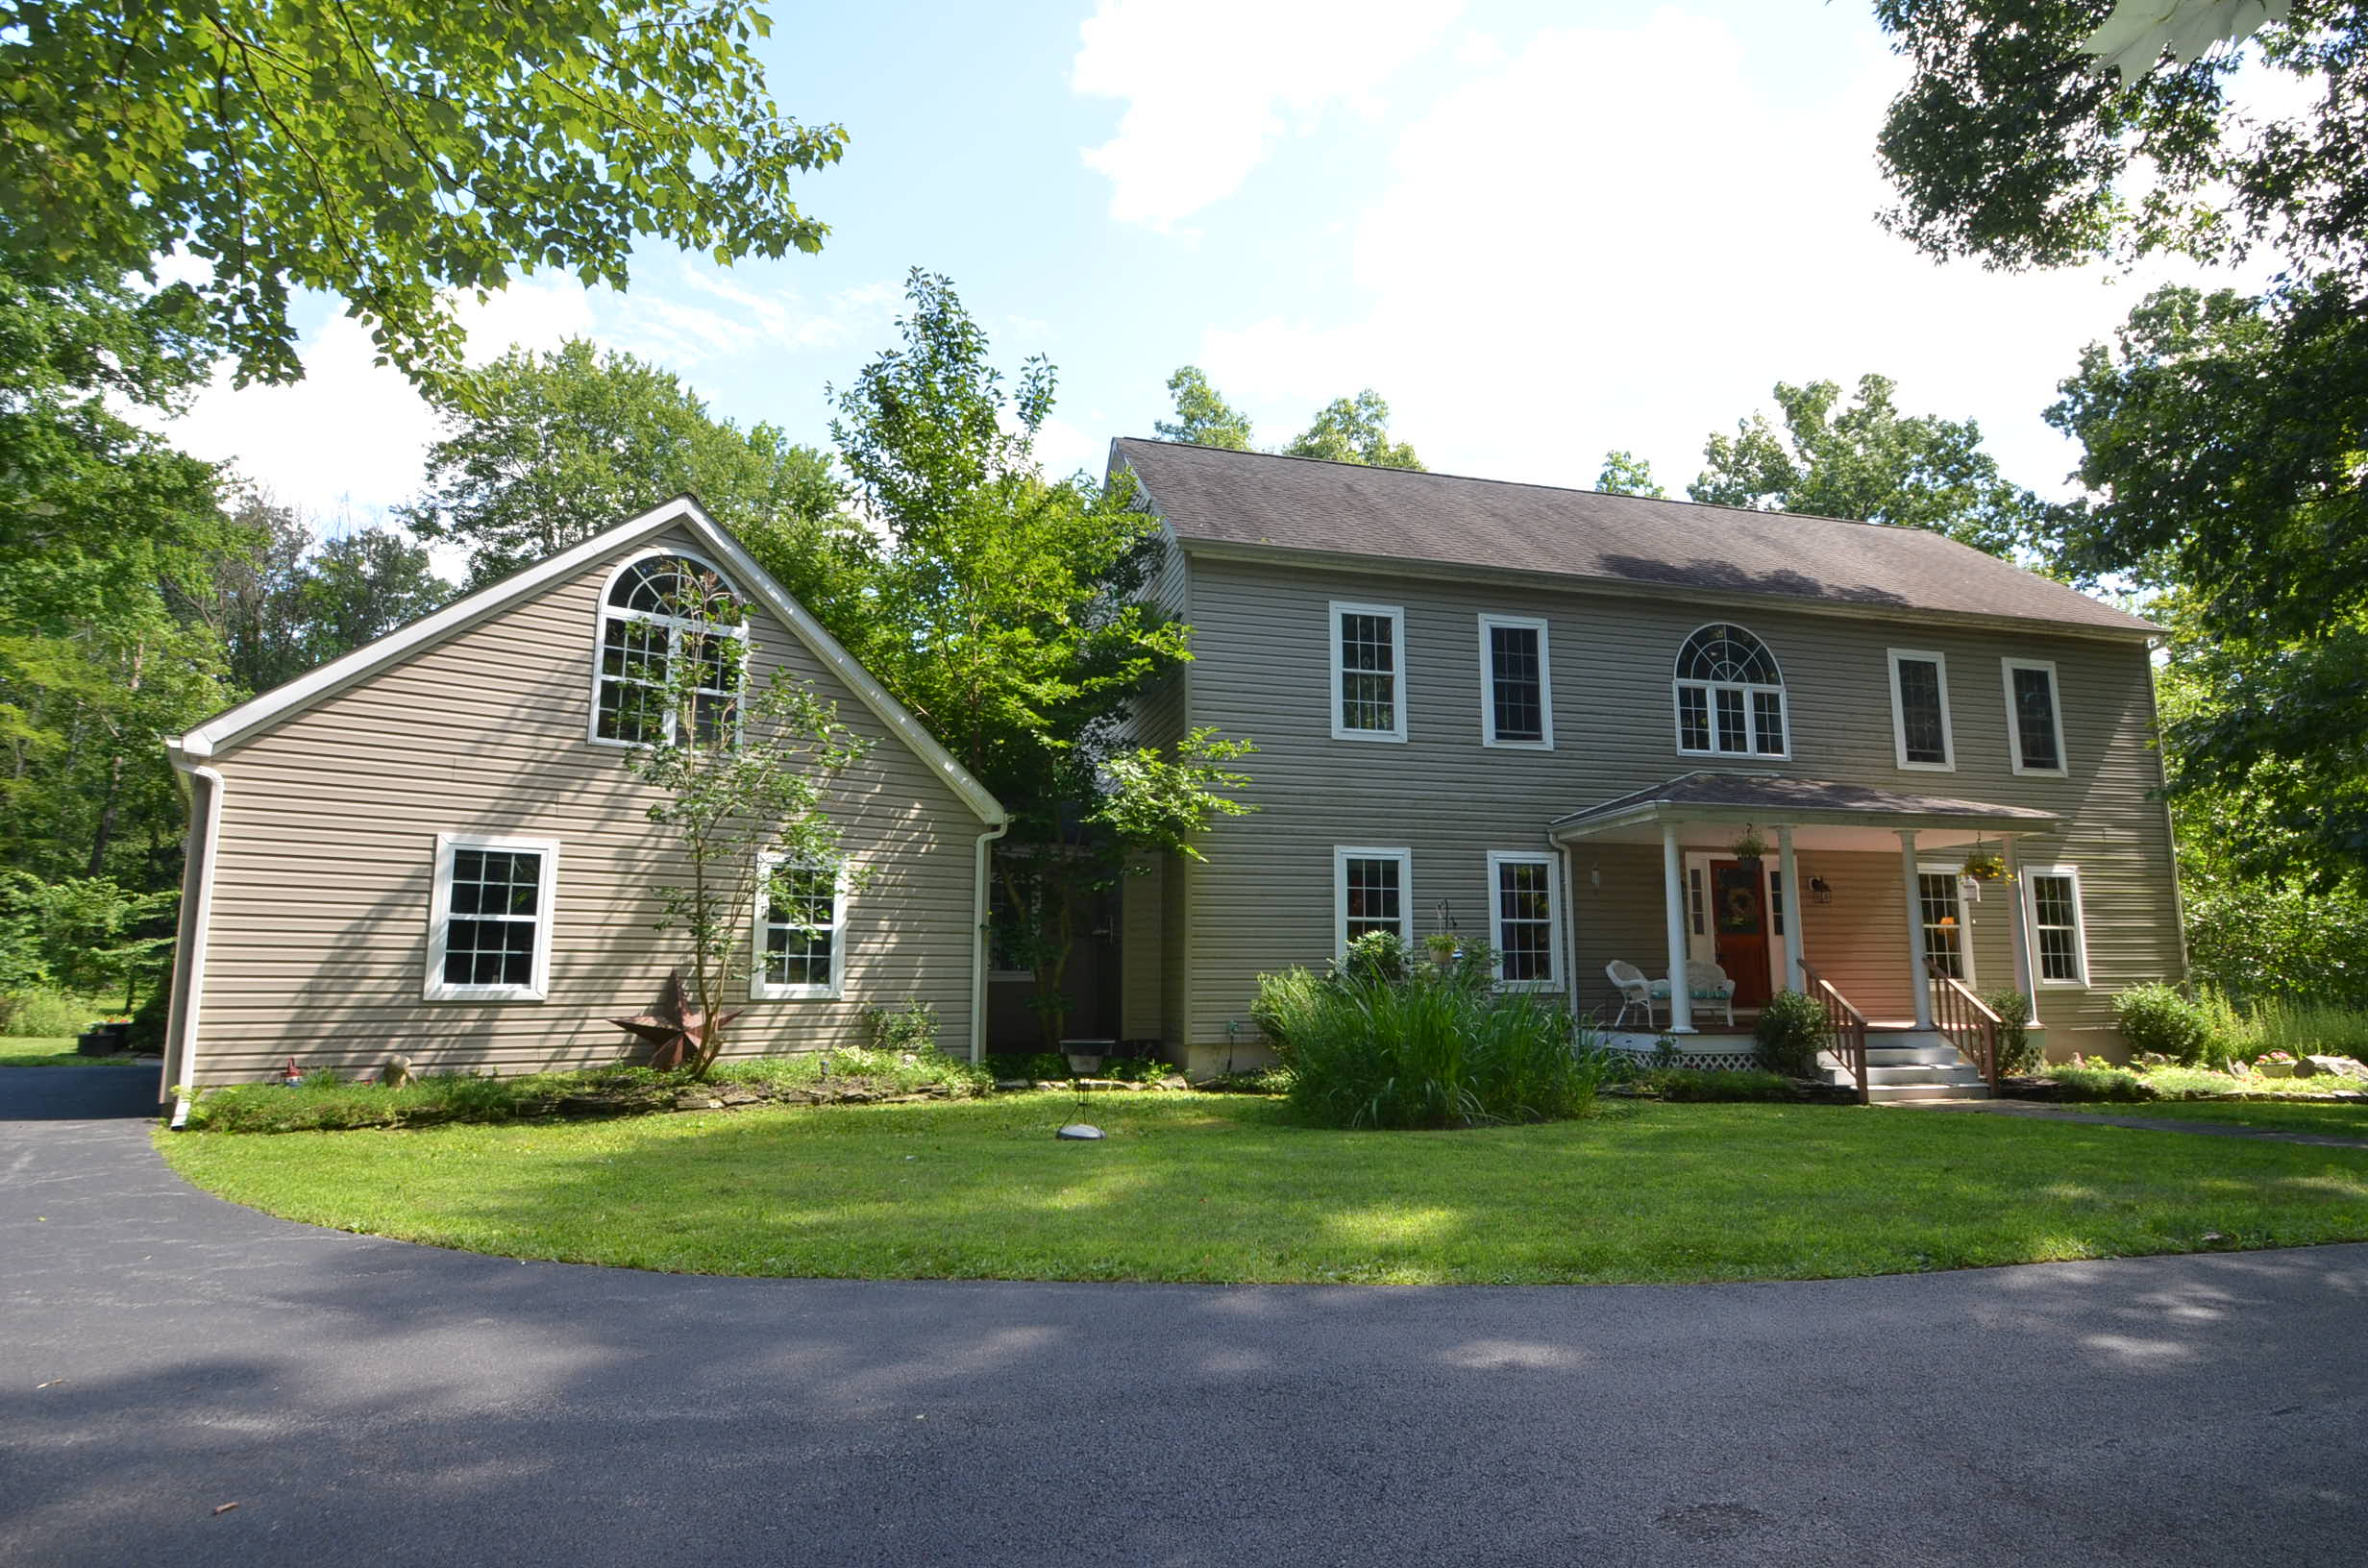 Houses for Sale Rhinebeck